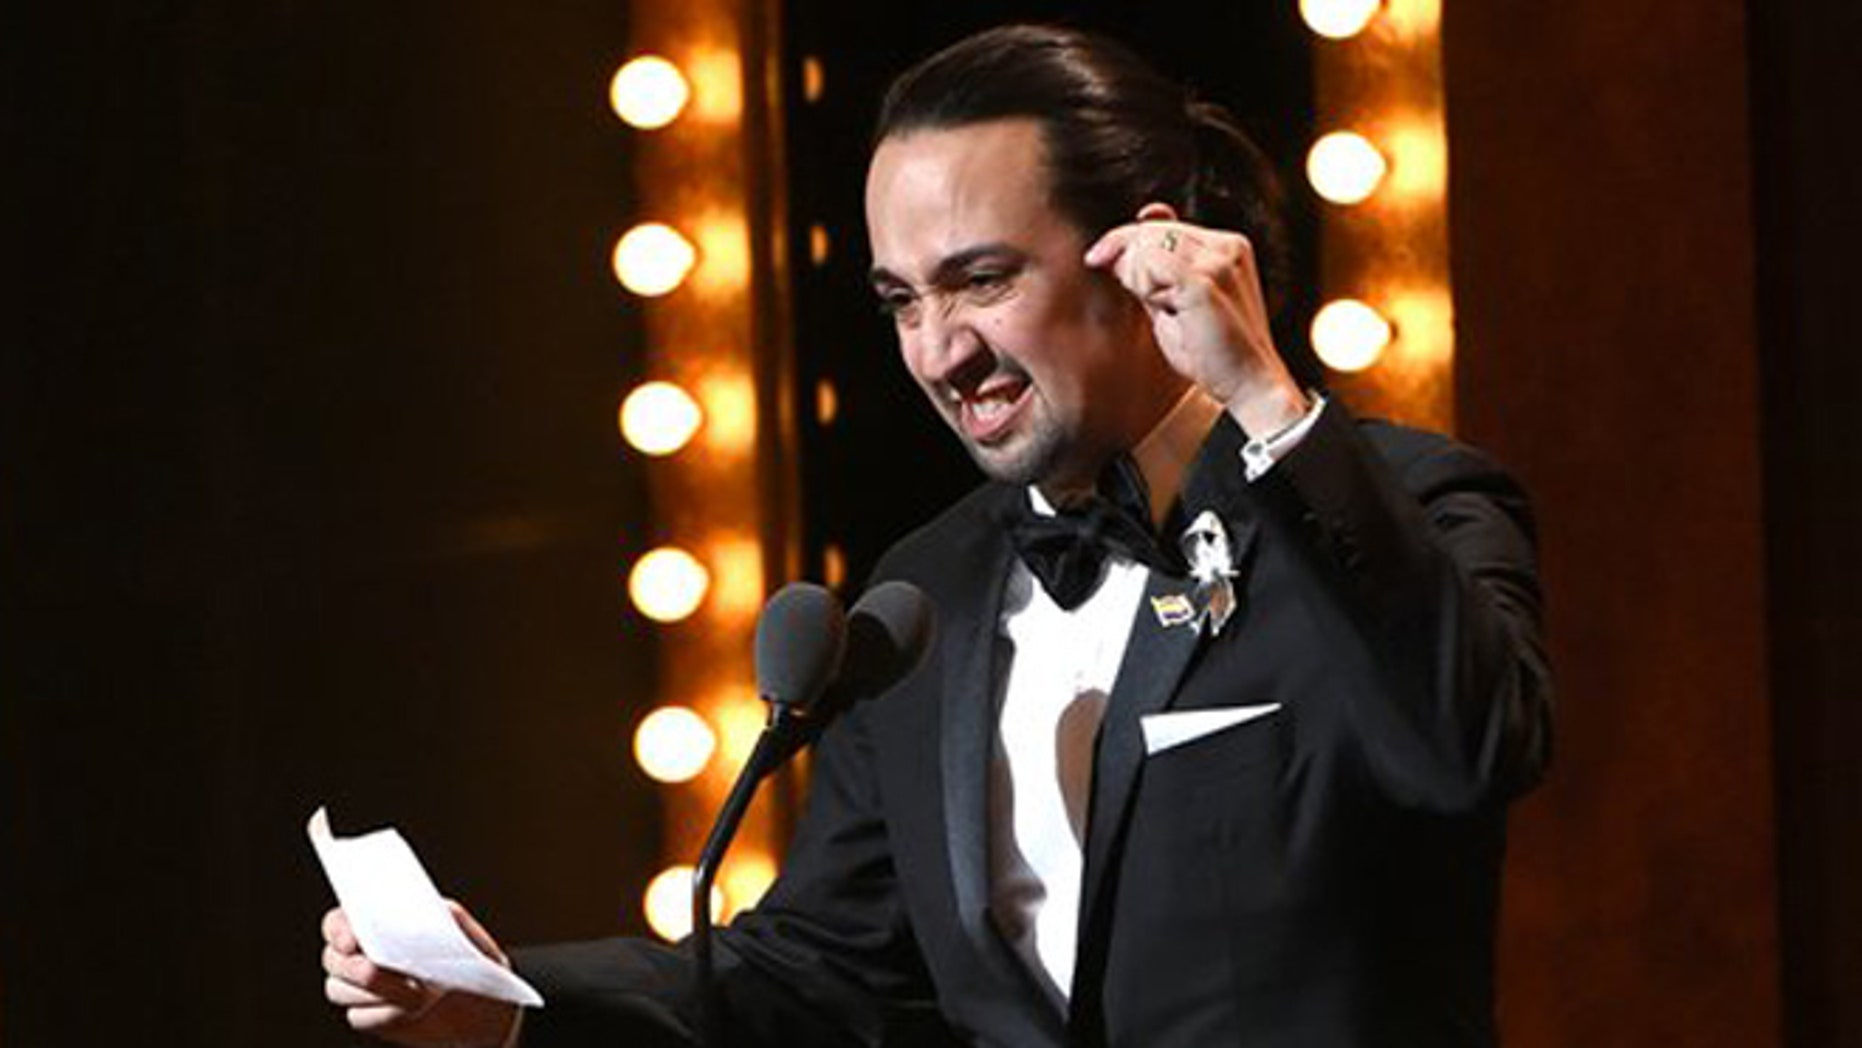 """Lin-Manuel Miranda accepts the award for best original  score for  """"Hamilton"""" at the Tony Awards at the Beacon Theatre on Sunday, June 12, 2016, in New York. (Photo by Evan Agostini/Invision/AP)"""